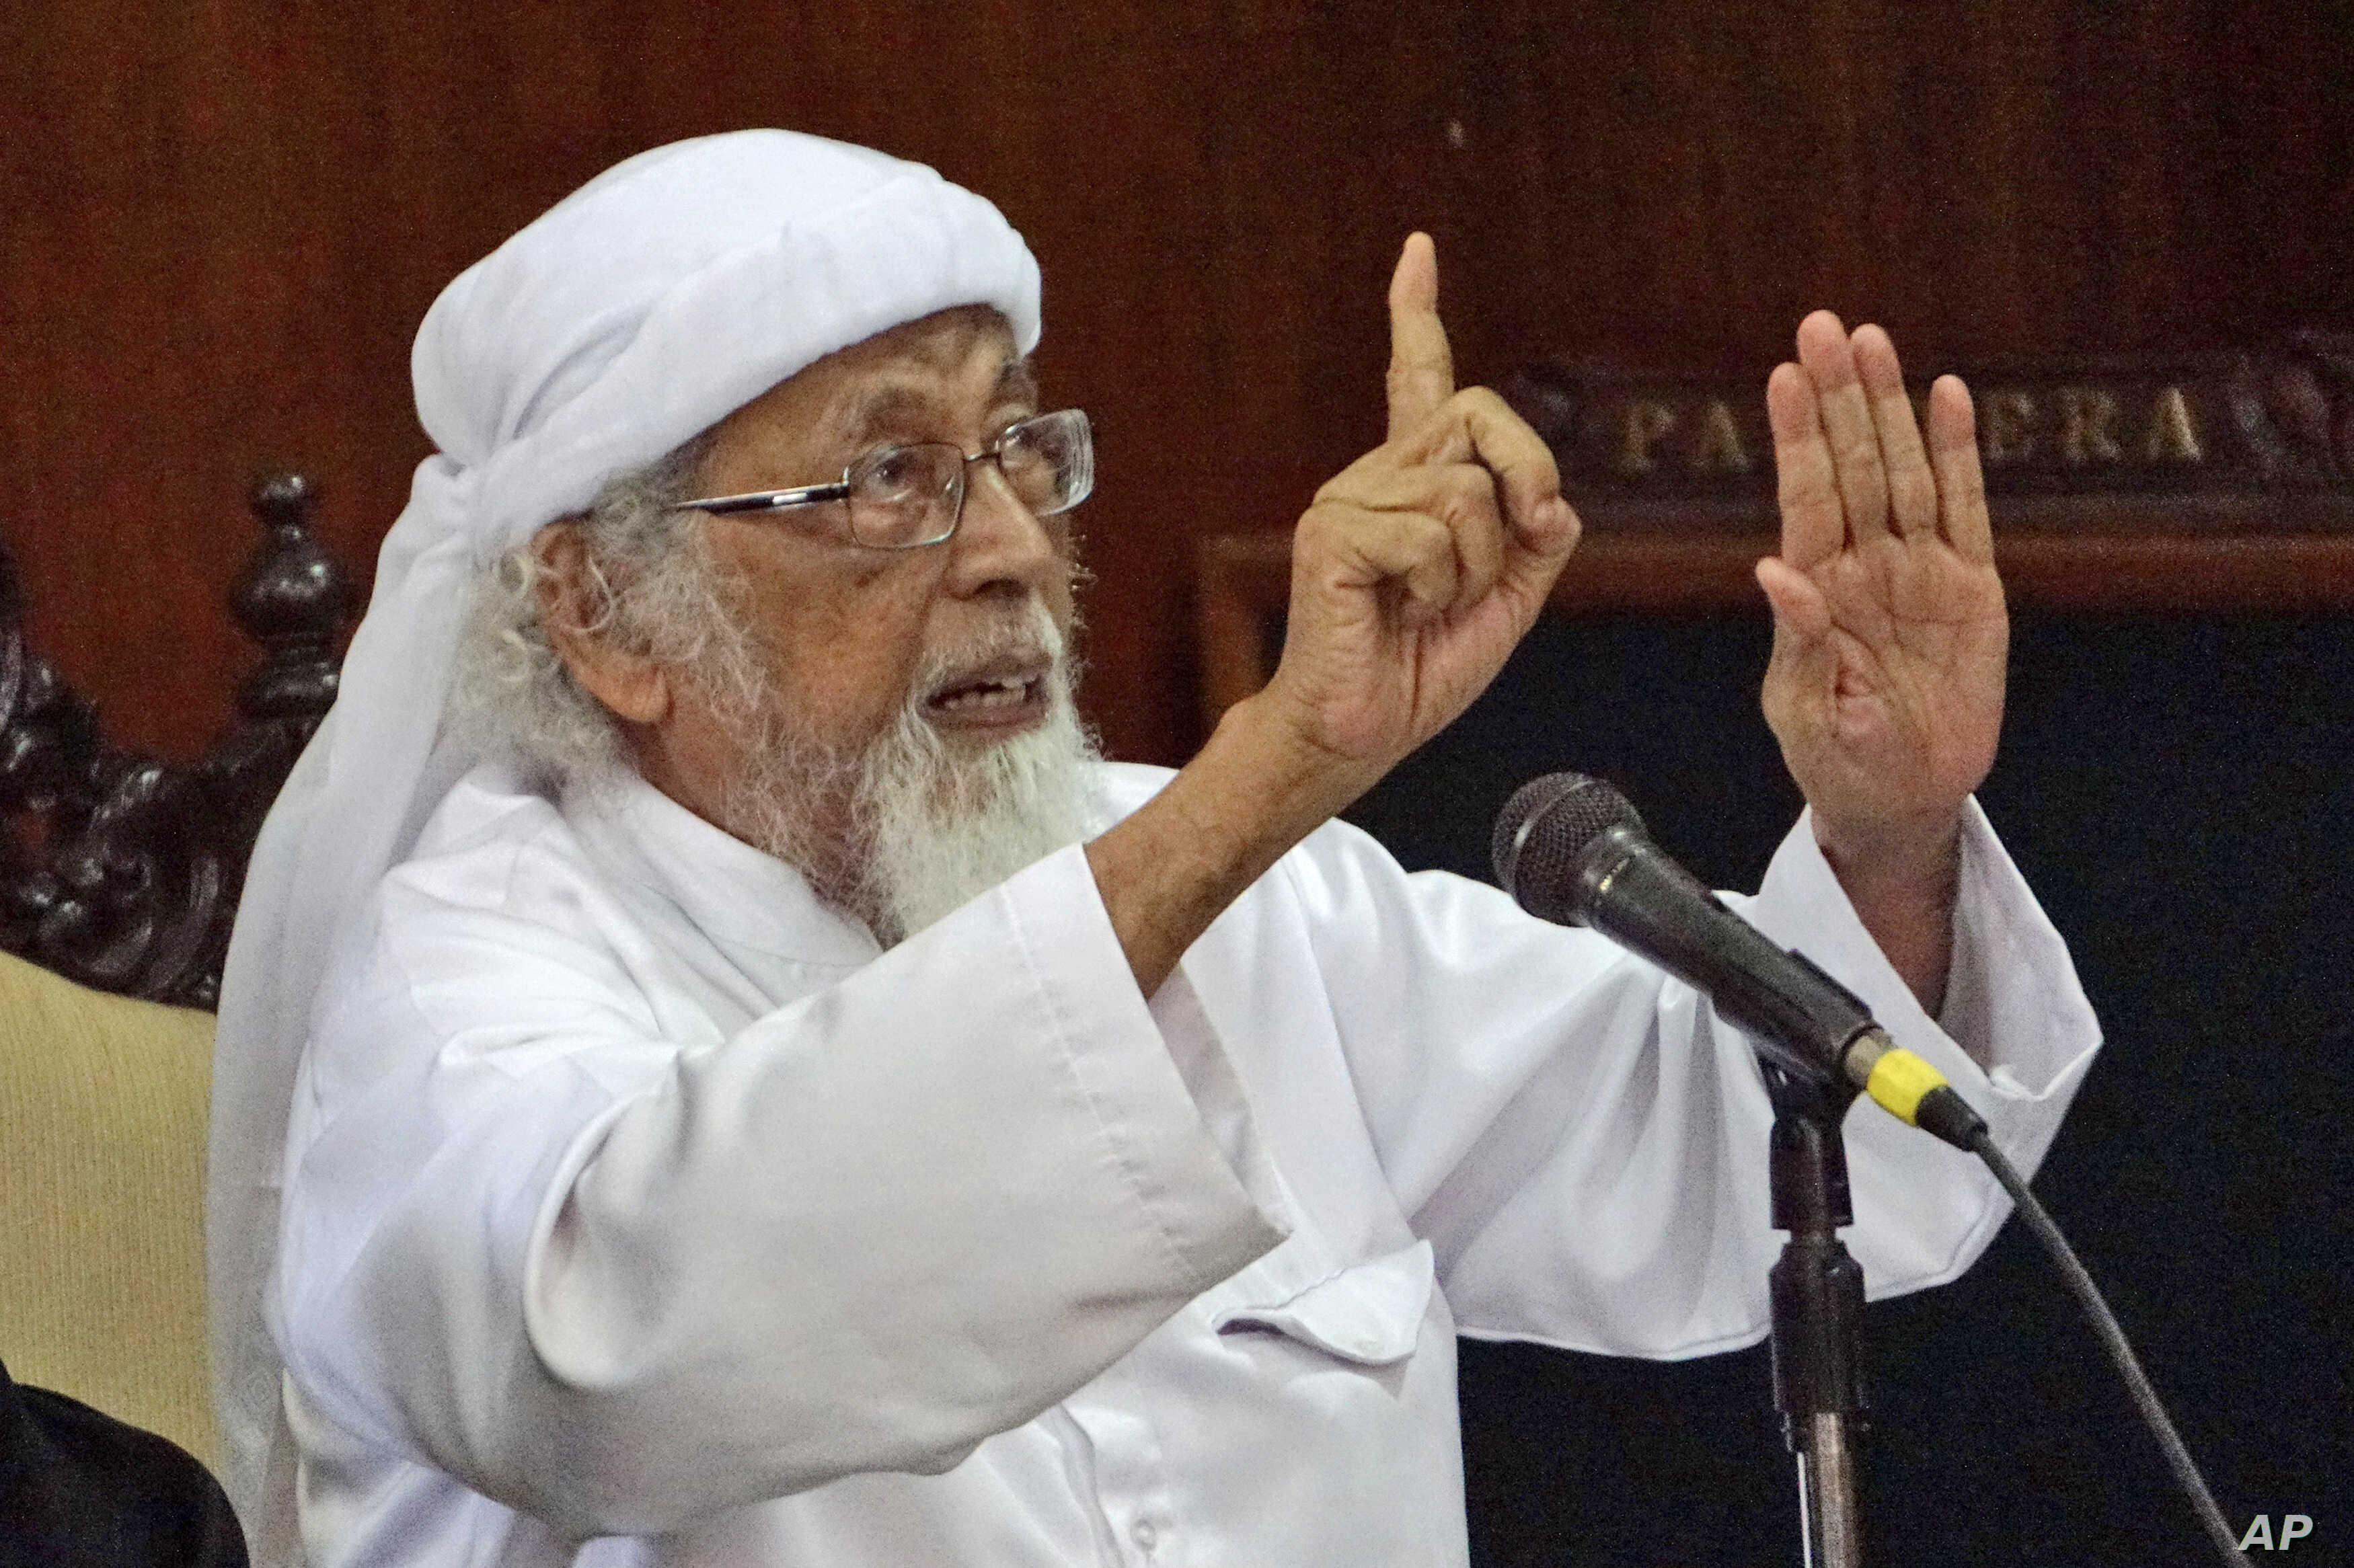 FILE - Radical Islamic cleric Abu Bakar Bashir gestures as he speaks to the judges during his appeal hearing at the district court in Cilacap, Central Java, Indonesia, Feb. 9, 2016. The 77-year-old cleric who was sentenced to 15 years in jail in 2011